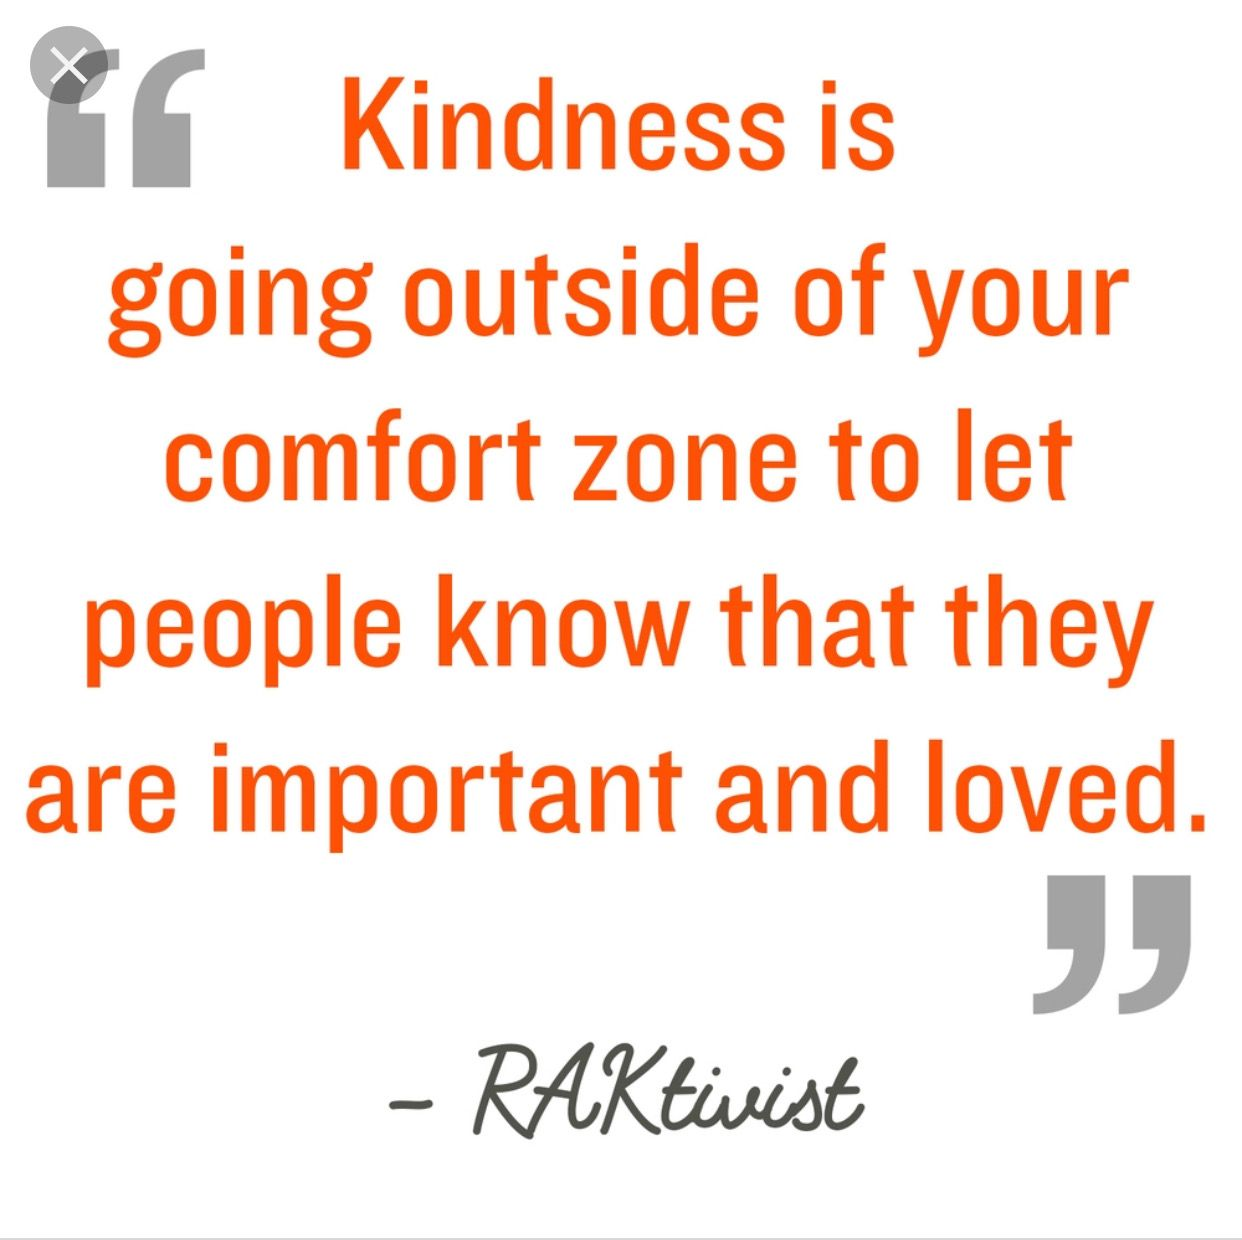 Pin By Pauline Mccauley On Kindness Kindness Quotes Cool Words